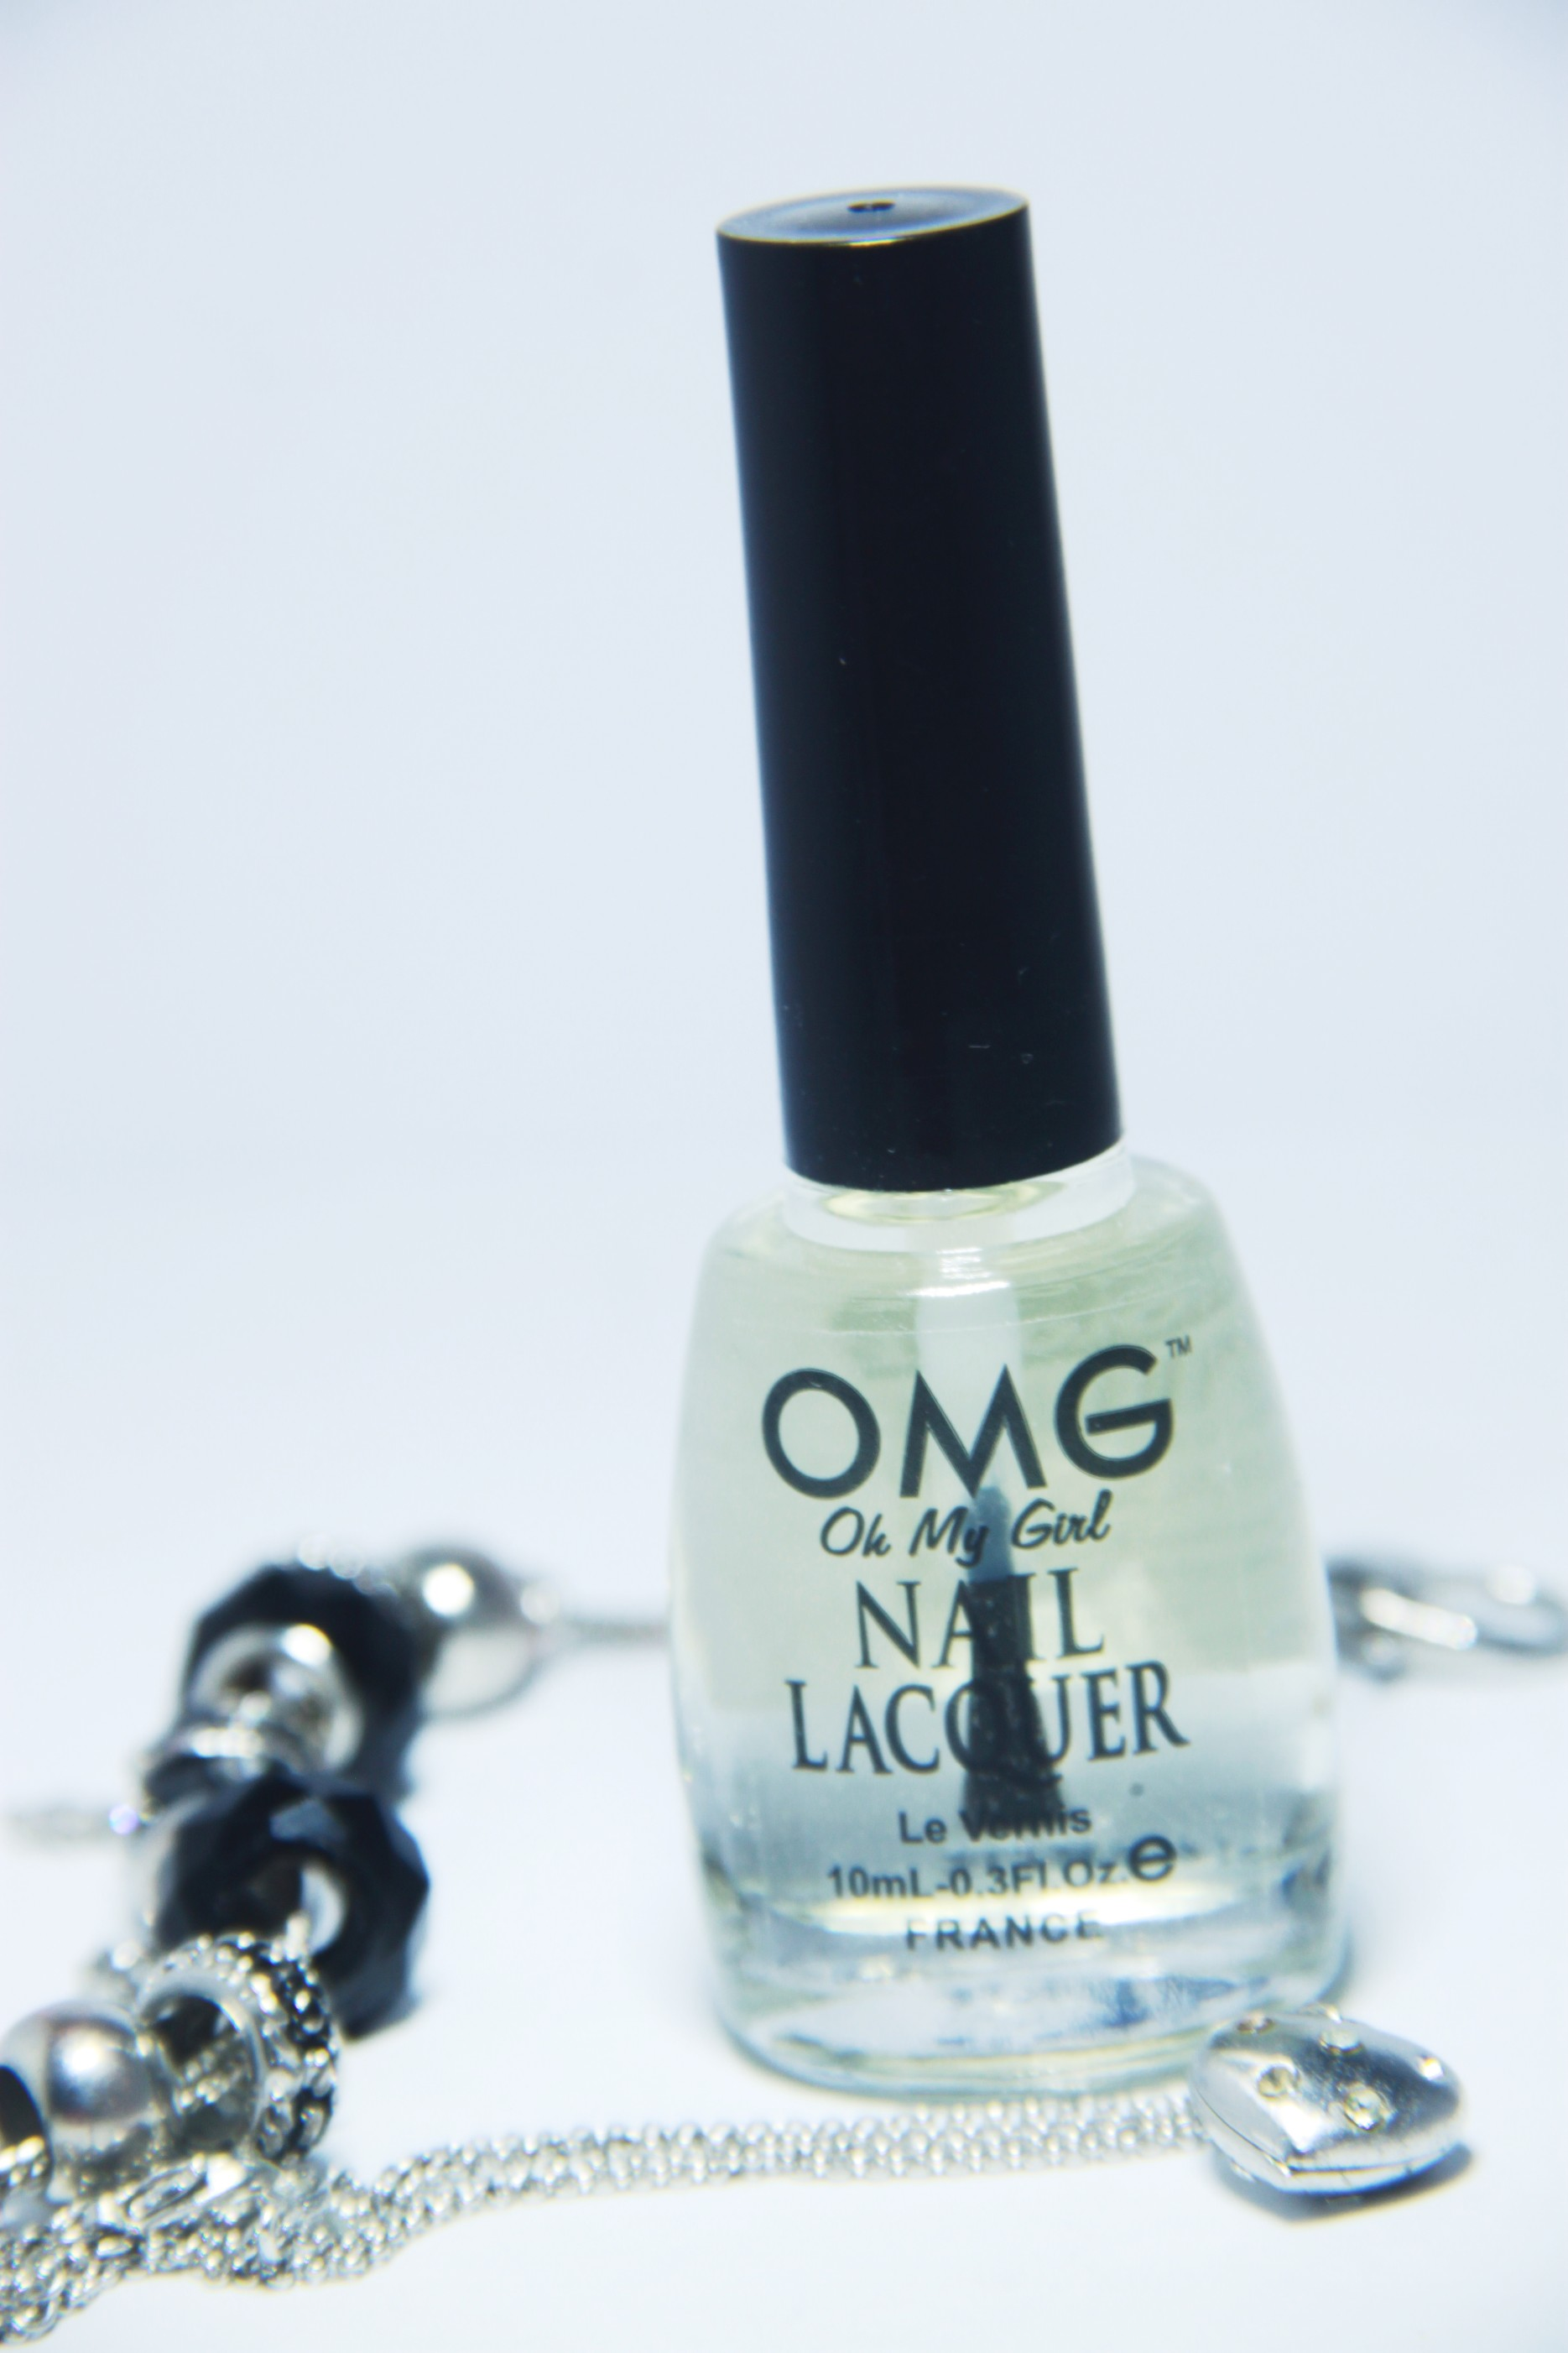 12 OMG Ways Nailpolish can be Used (other than nails)